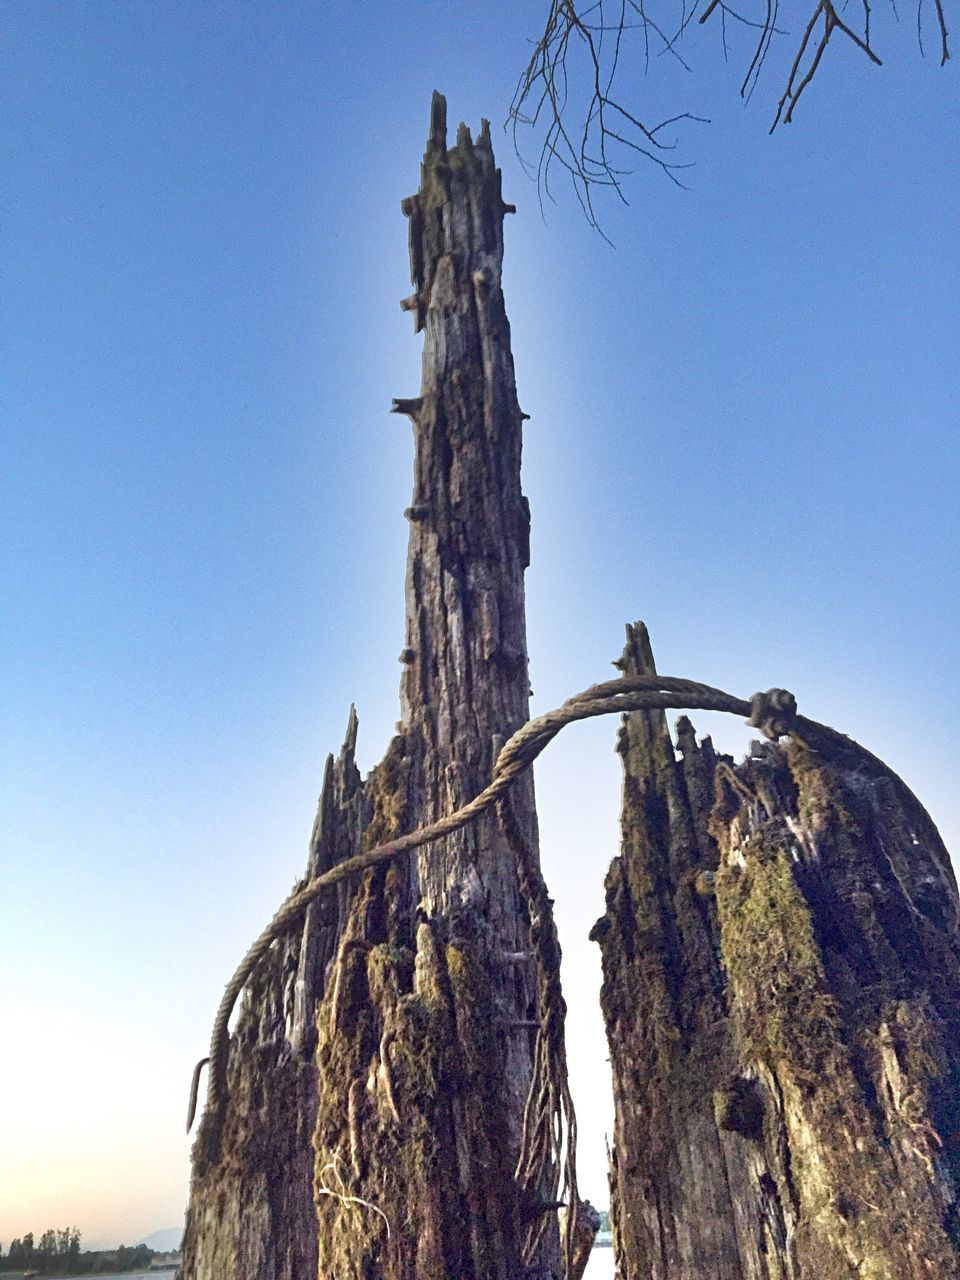 Low Angle View Of Rope Tied To Weathered Tree Trunk Against Sky